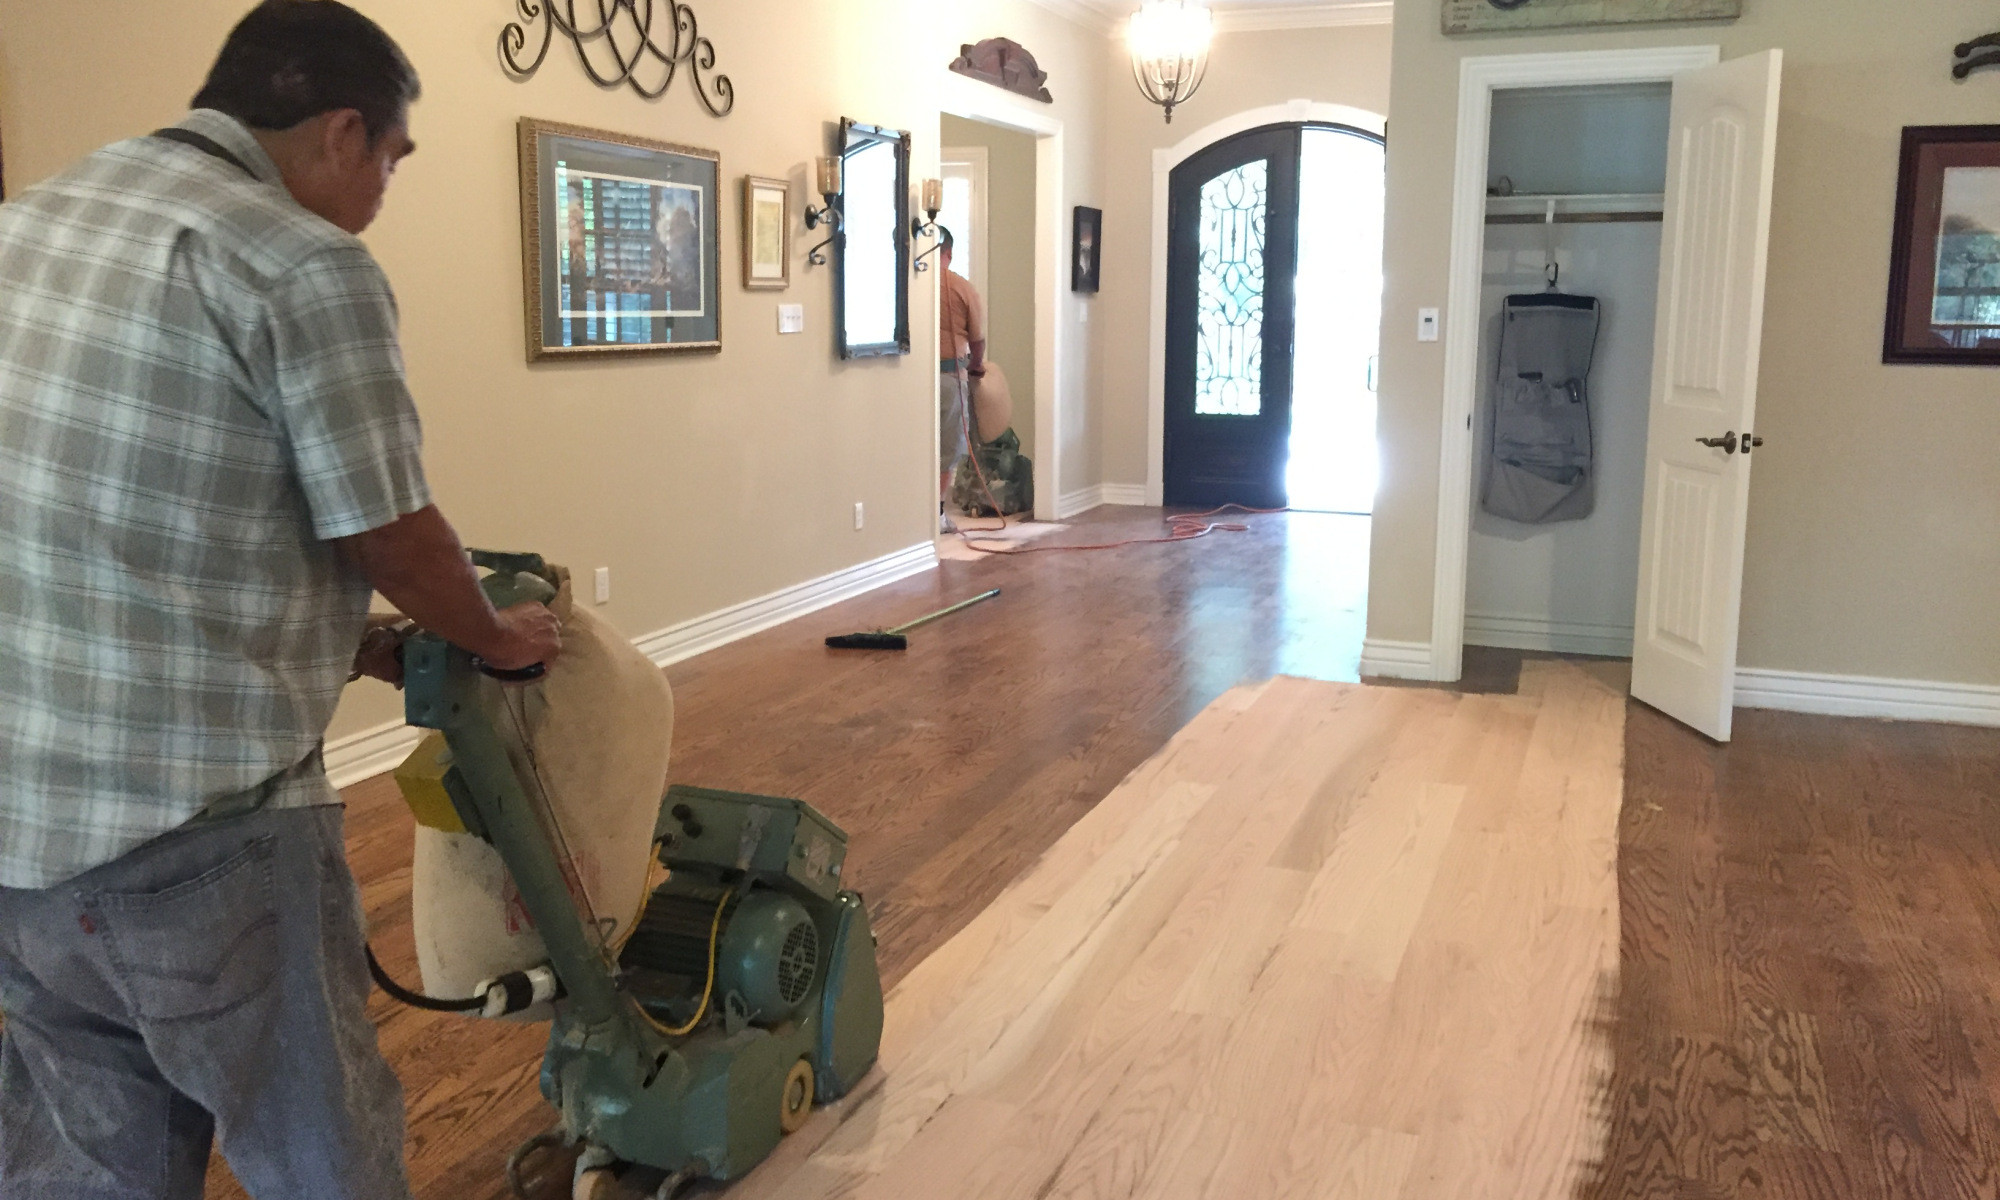 how to refinish hardwood floors easy of refinishing hardwood flooring company in when it comes to refinishing wood floors its not always as easy as you would think there is a lot of inconvenience disruption and smell in the home to